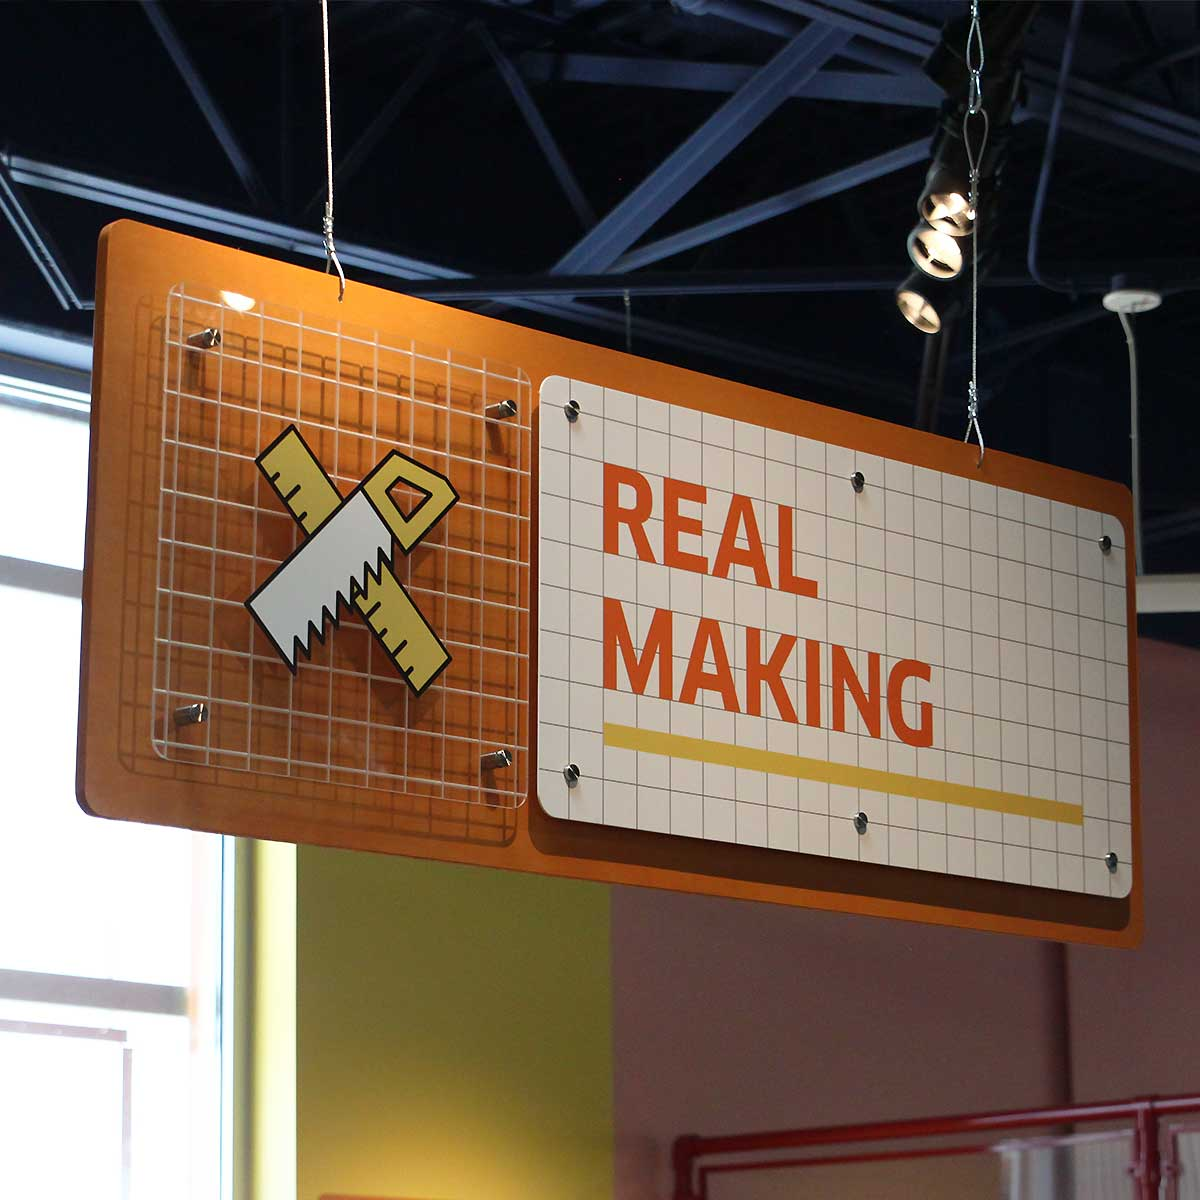 Real Making sign